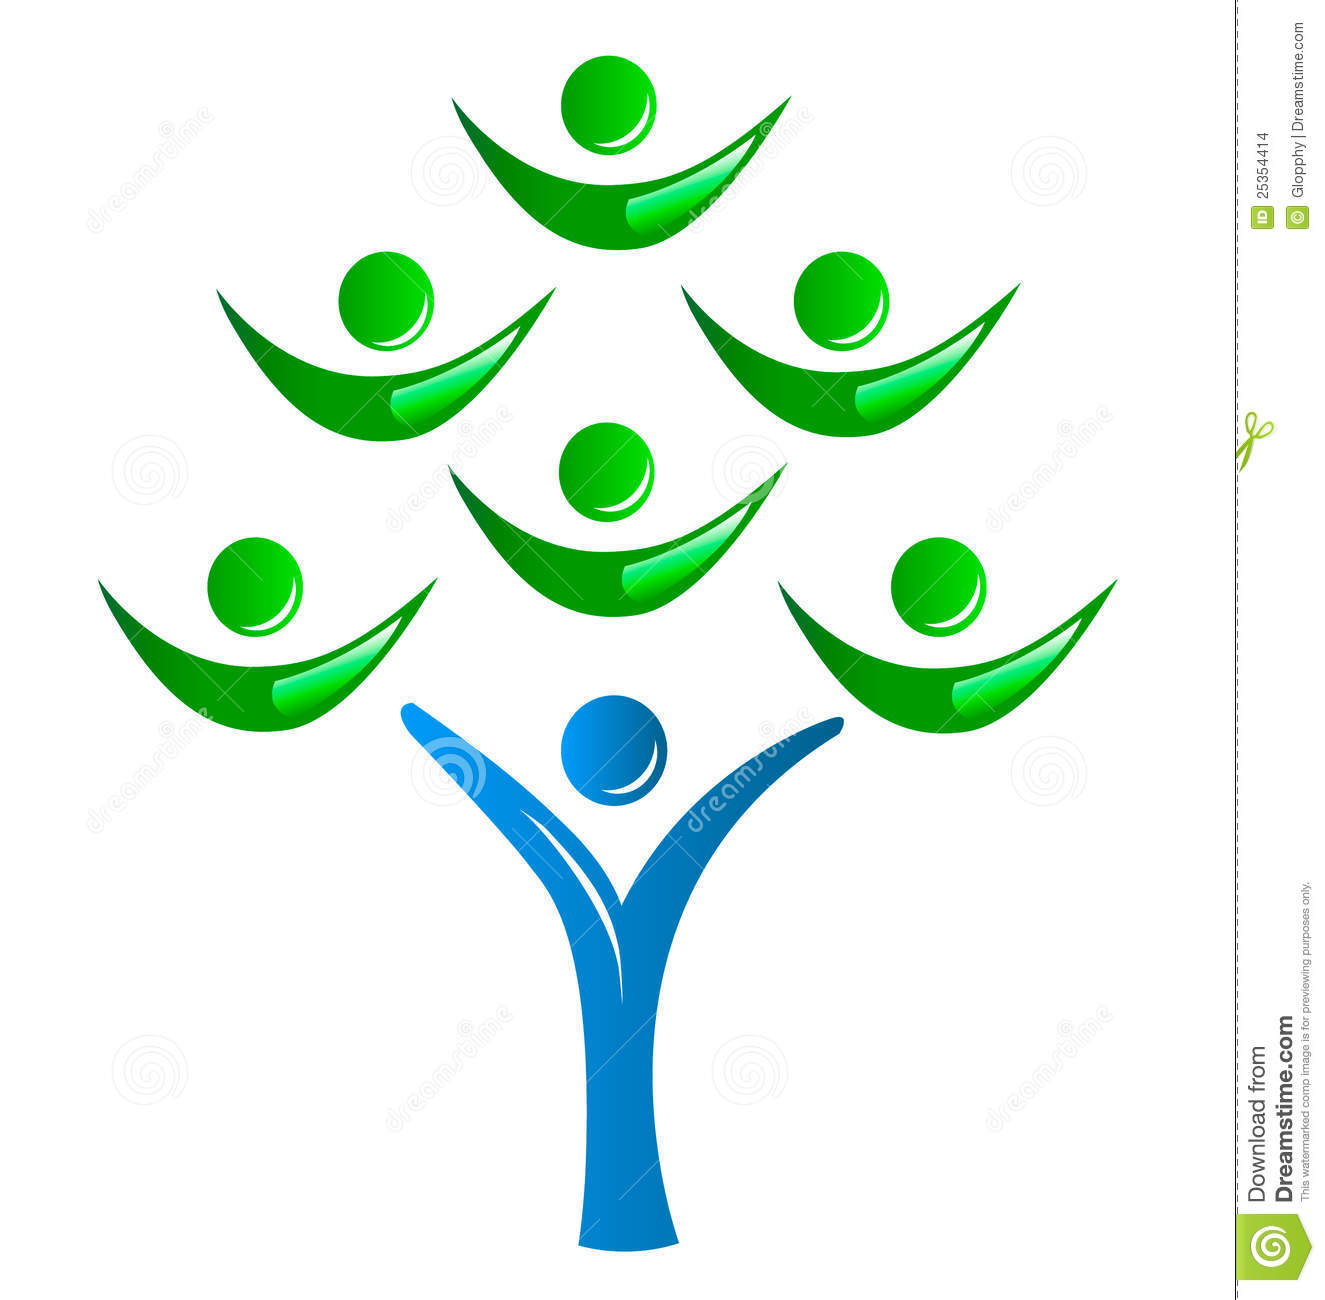 tree group of people logo stock vector illustration of company